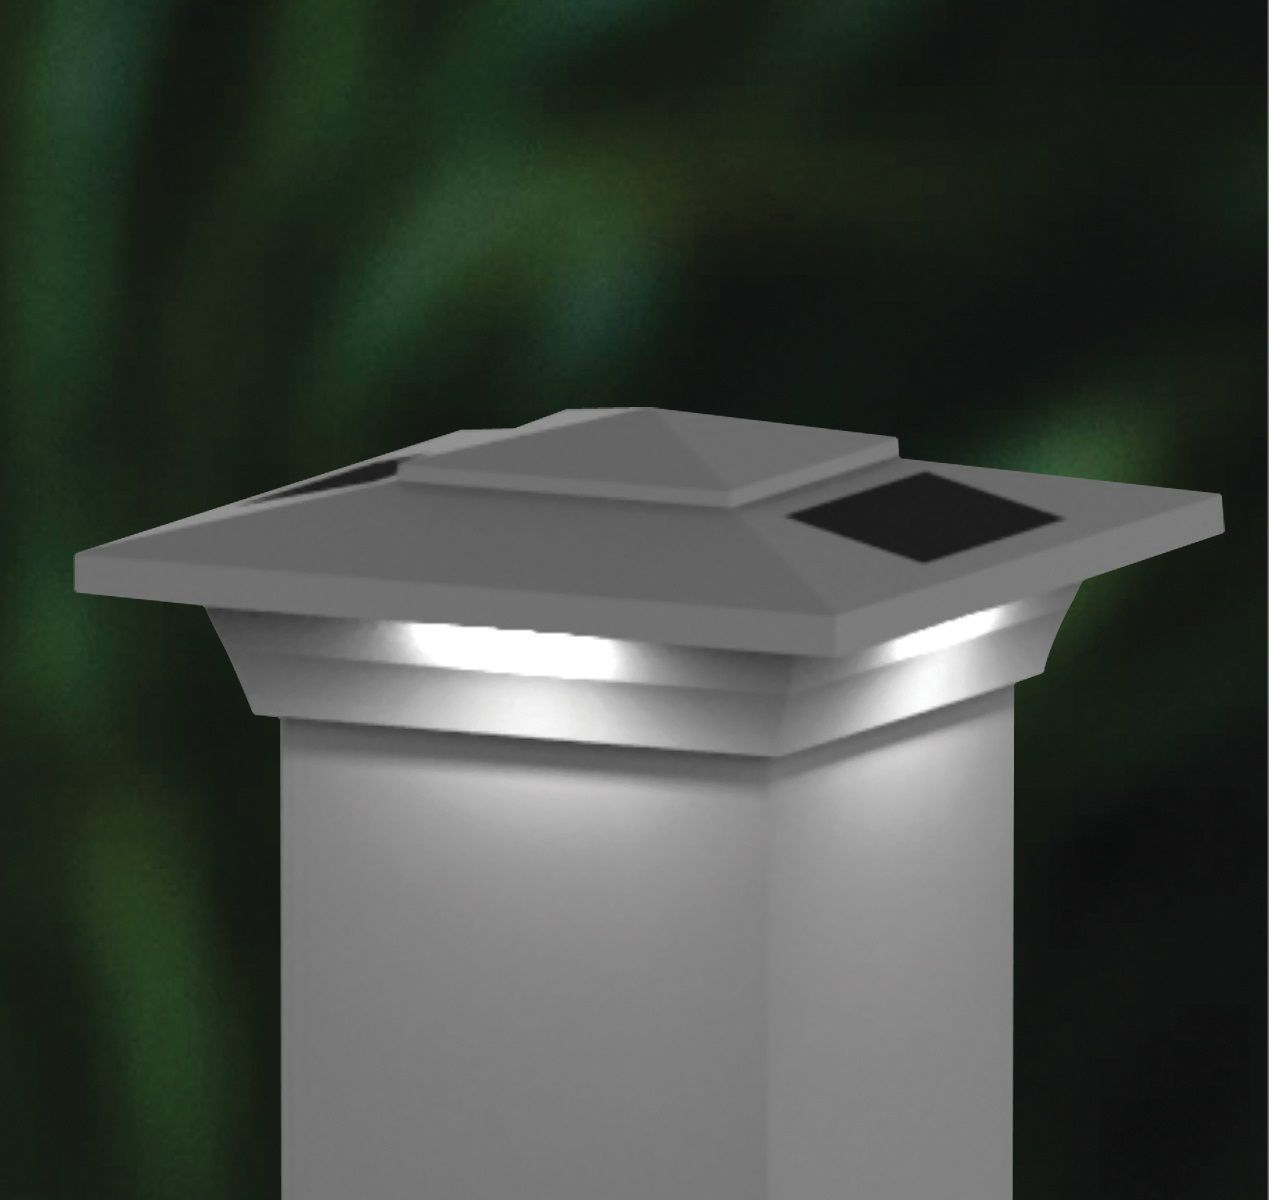 4x4 Solar Fence Post Cap Lights White Low Profile Windsor Set Of 2 regarding size 1269 X 1200